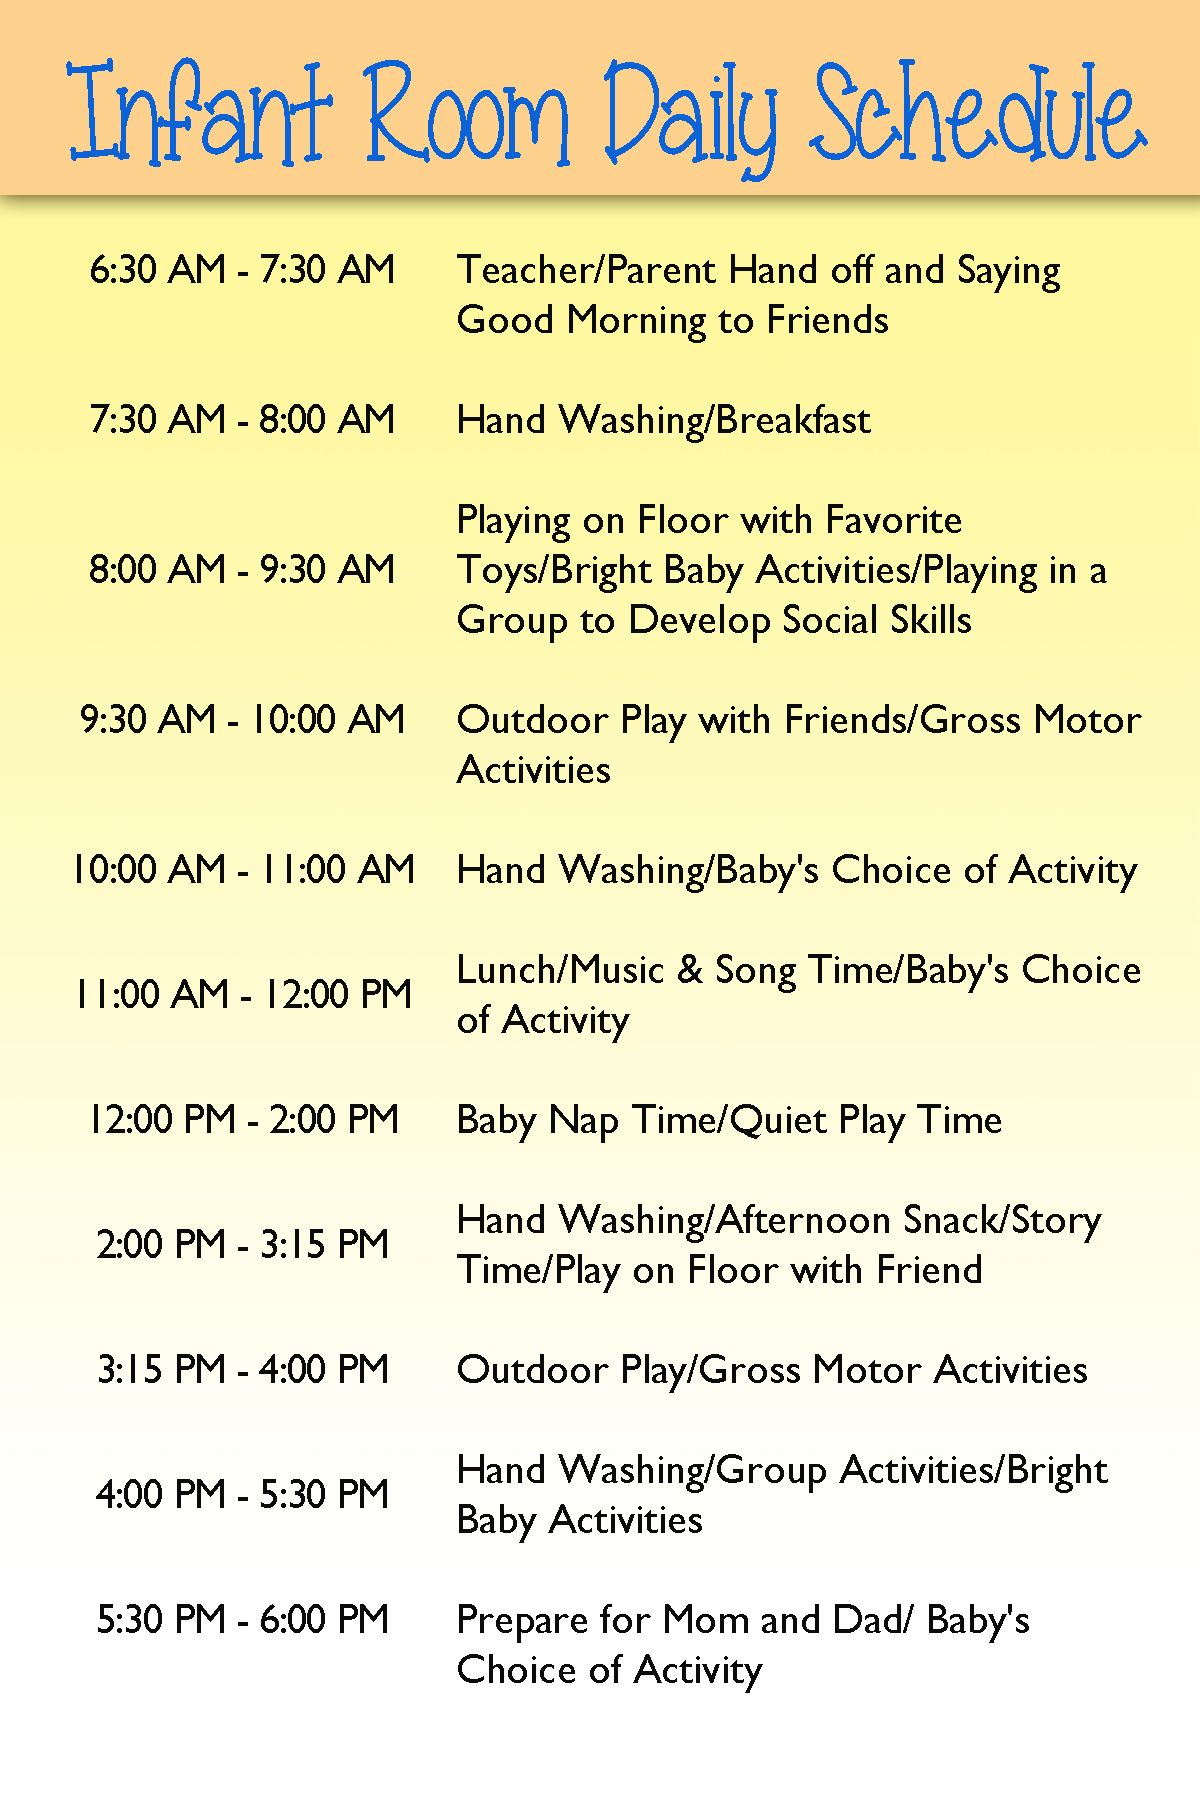 Infant Day care schedule | Infants | Pinterest | Infant, Infant ...